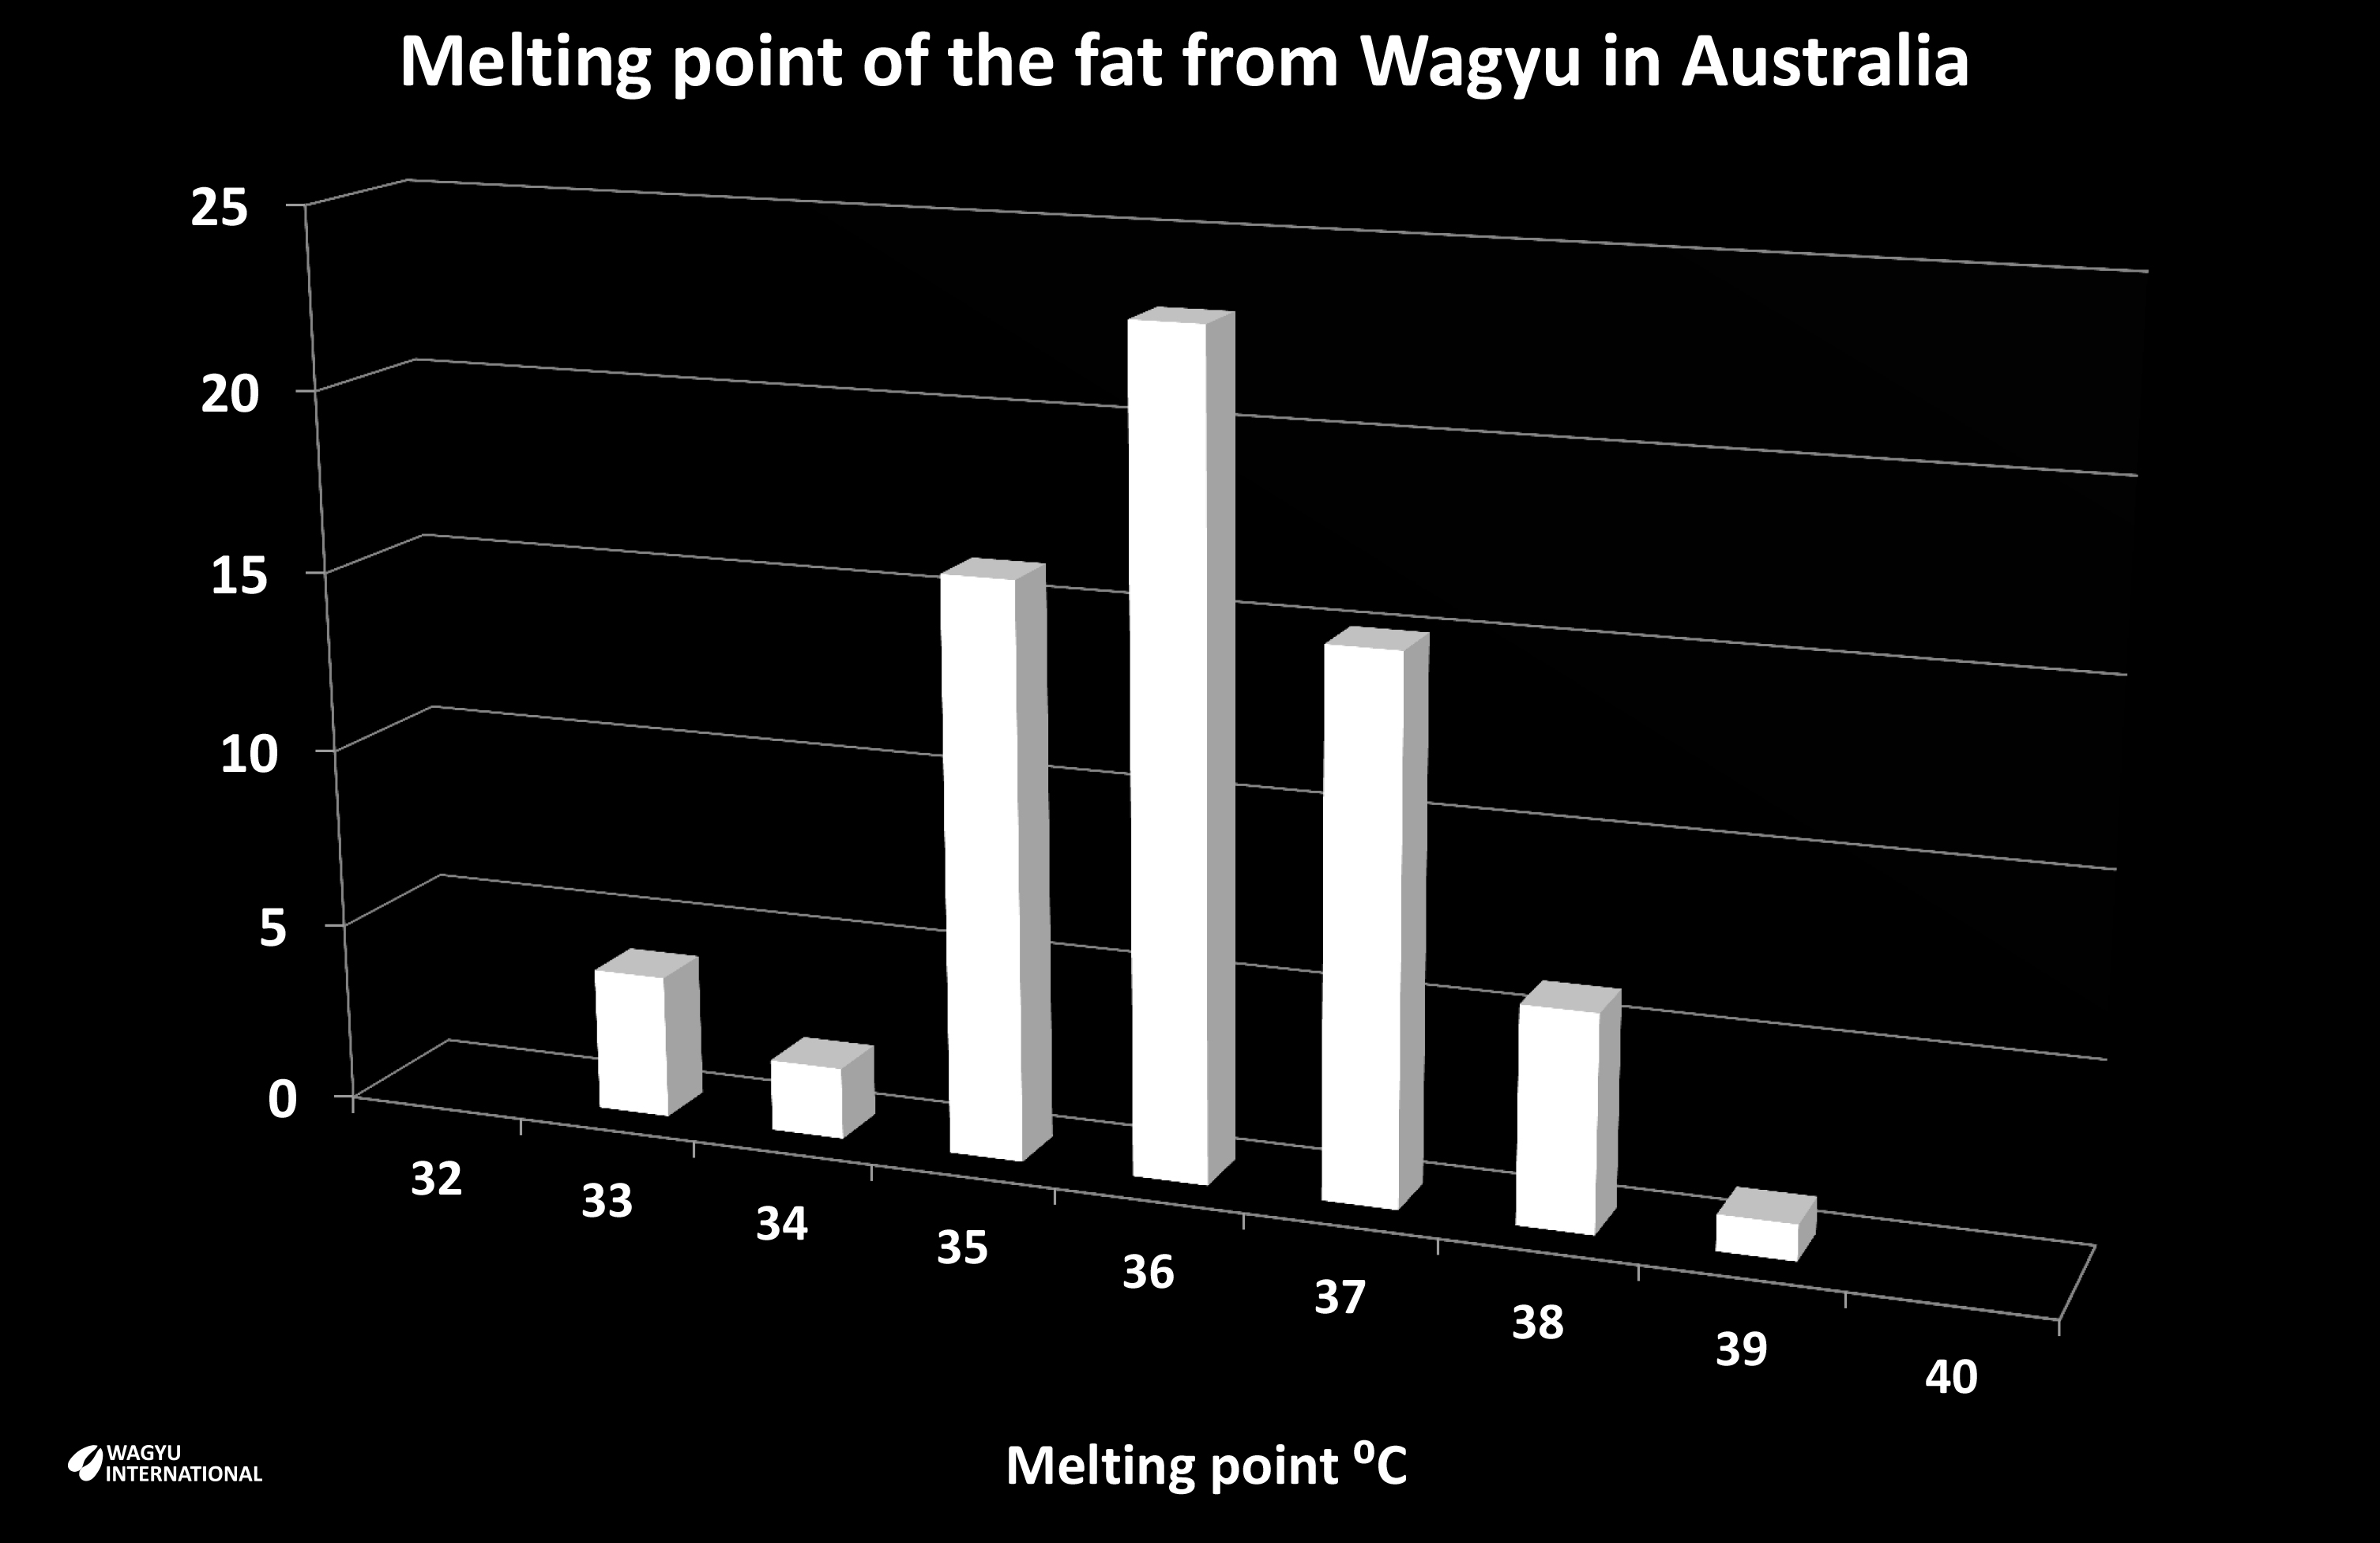 Chart of distribution of melting point of fat from Wagyu in Australian feedlot